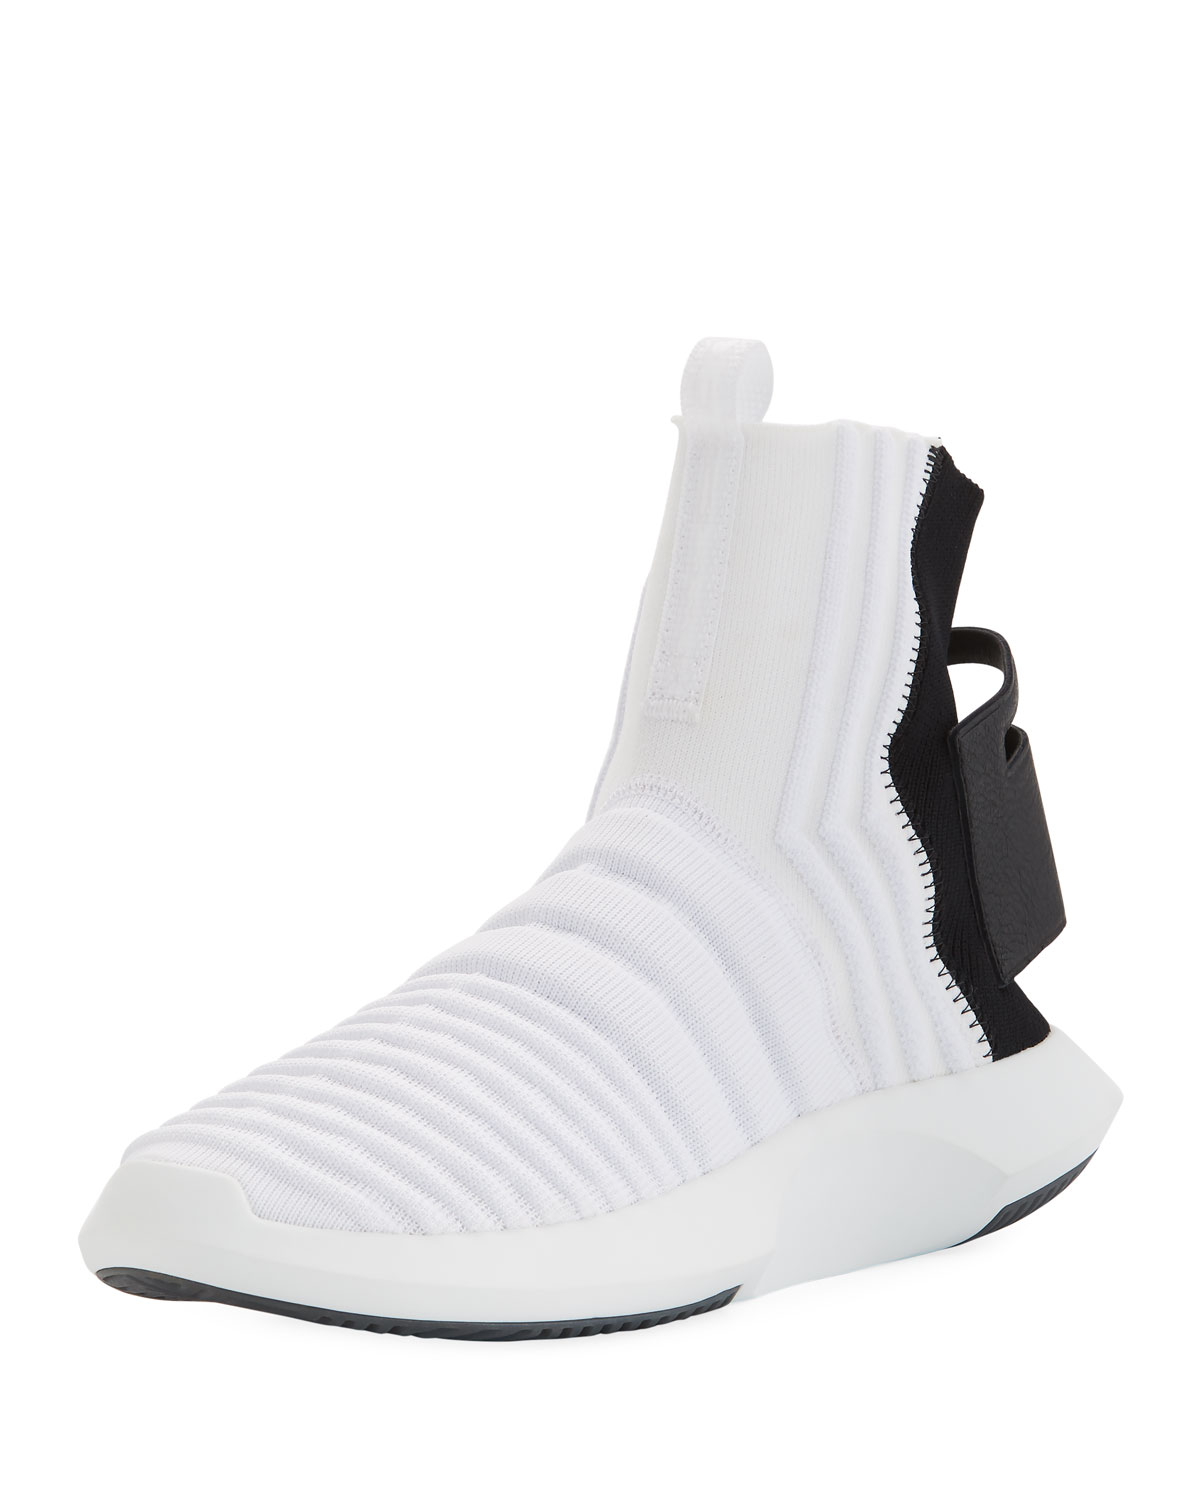 on sale 1dd7c 603c2 AdidasMens Crazy 1 ADV High-Top Sock Sneakers